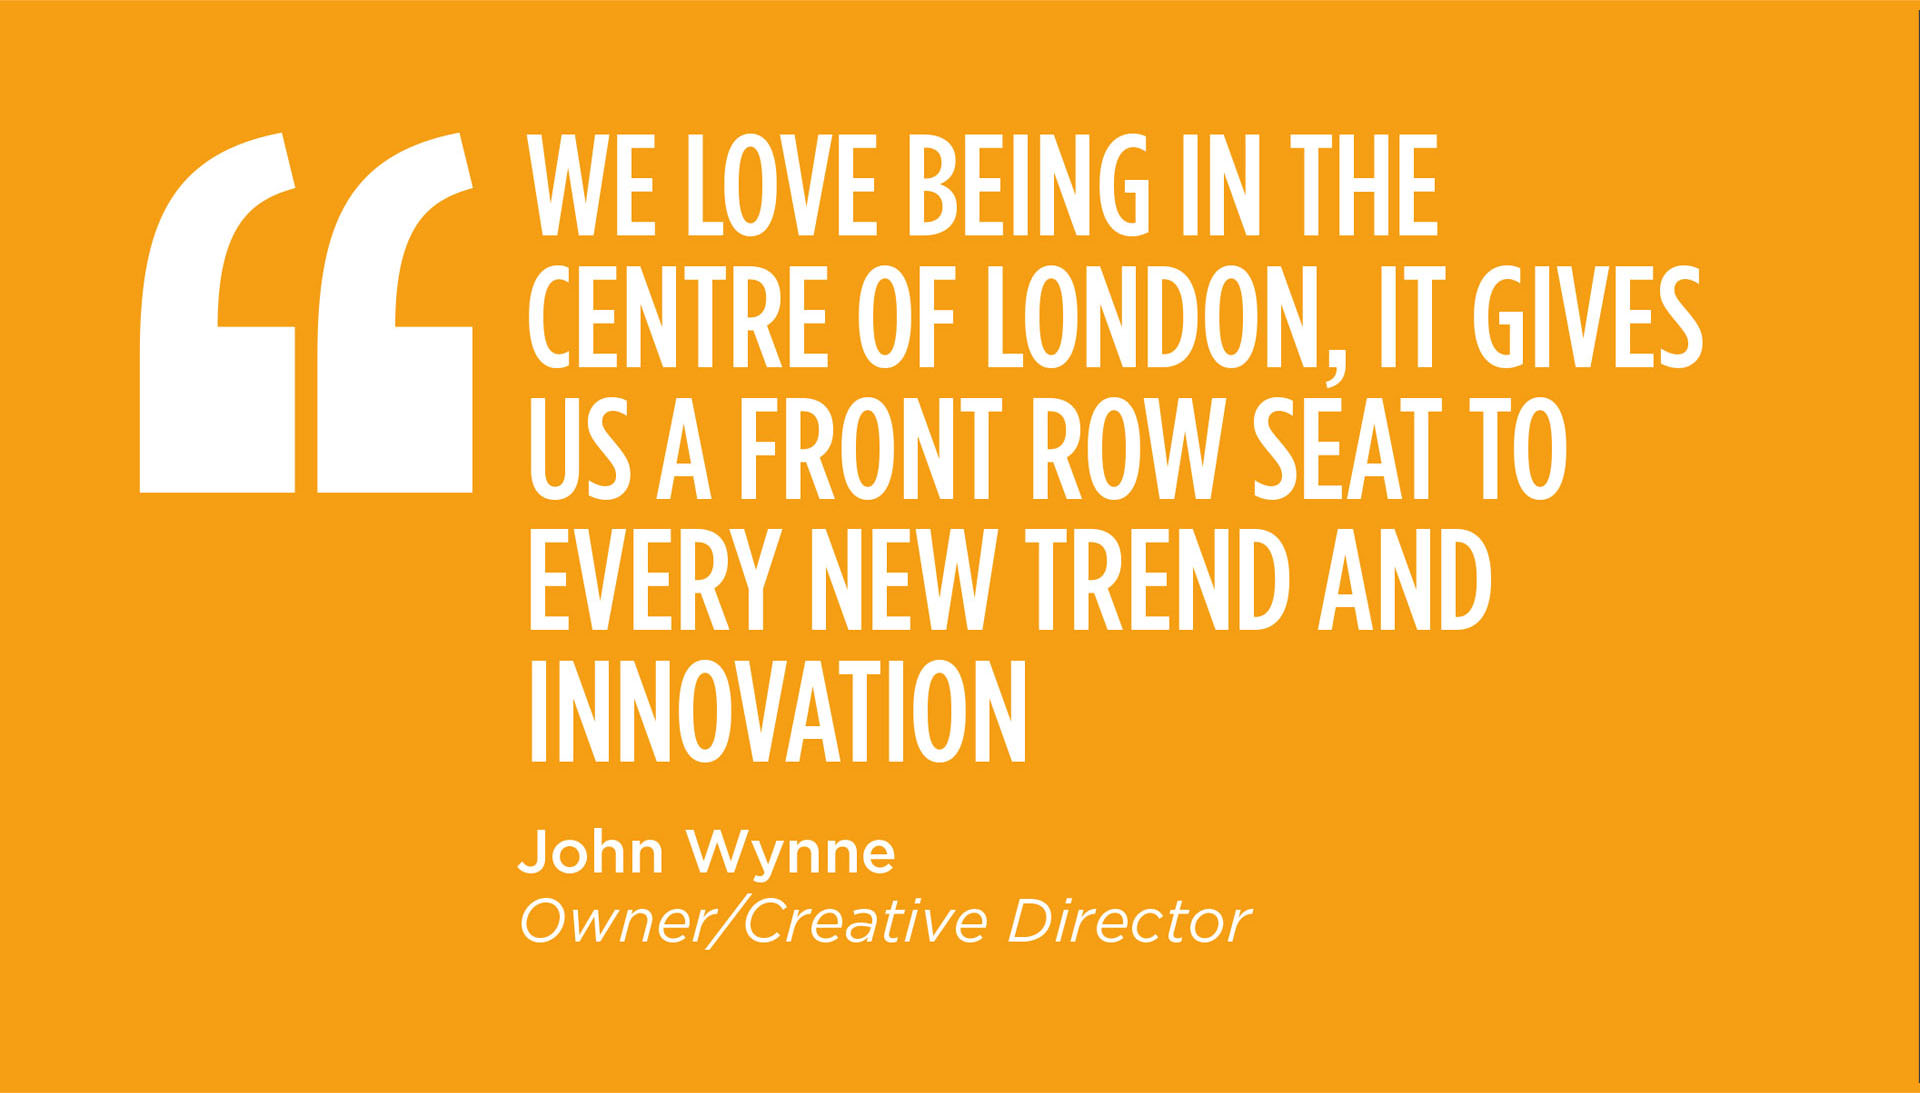 WE LOVE BEING IN THE CENTRE OF LONDON, IT GIVES US A FRONT ROW SEAT TO EVERY NEW TREND AND INNOVATION - John Wynne, Owner/Creative Director.